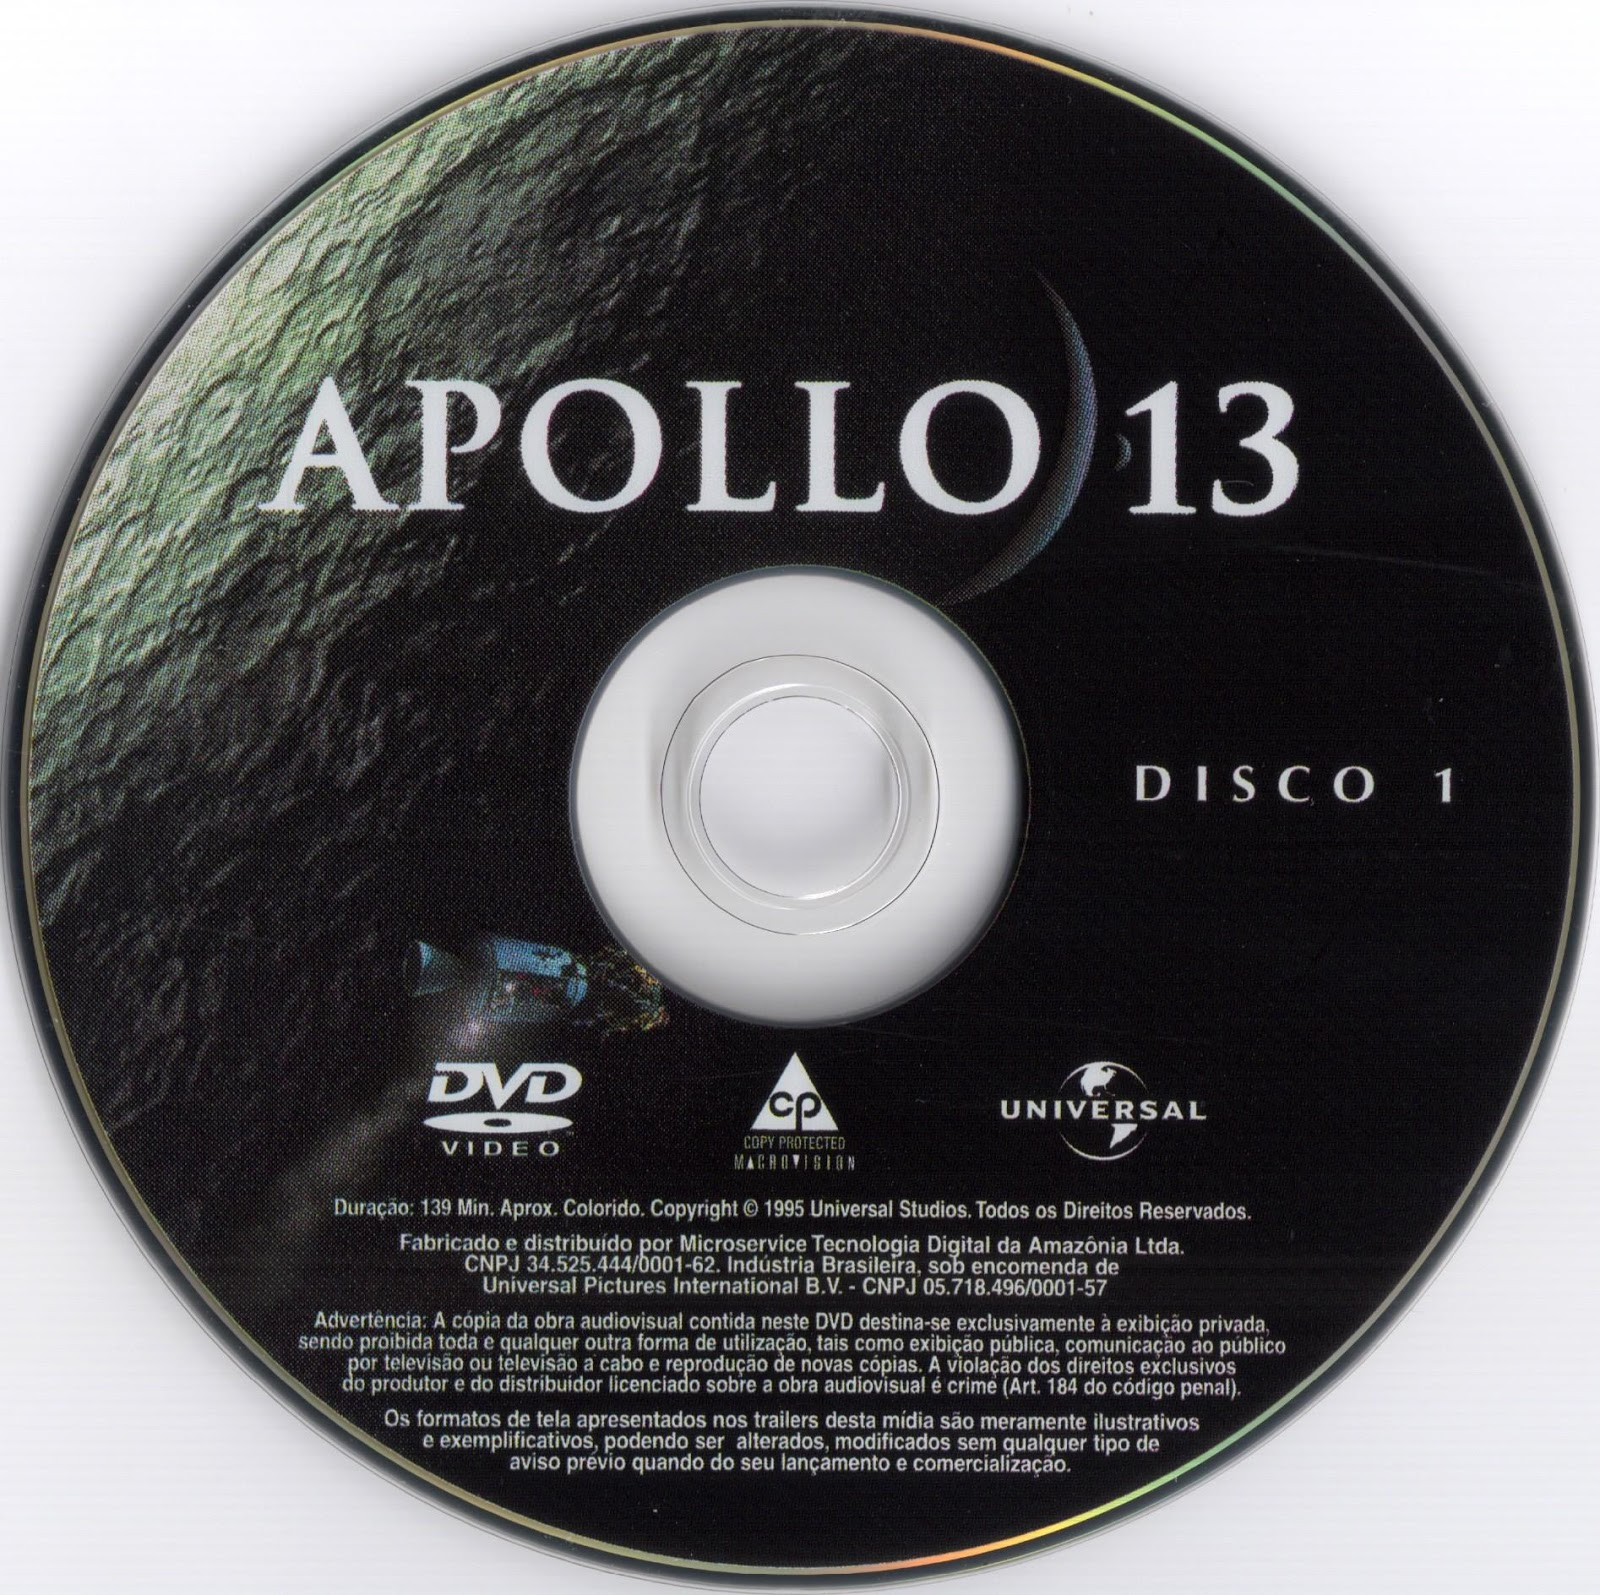 Label DVD Apollo 13 Disco 1